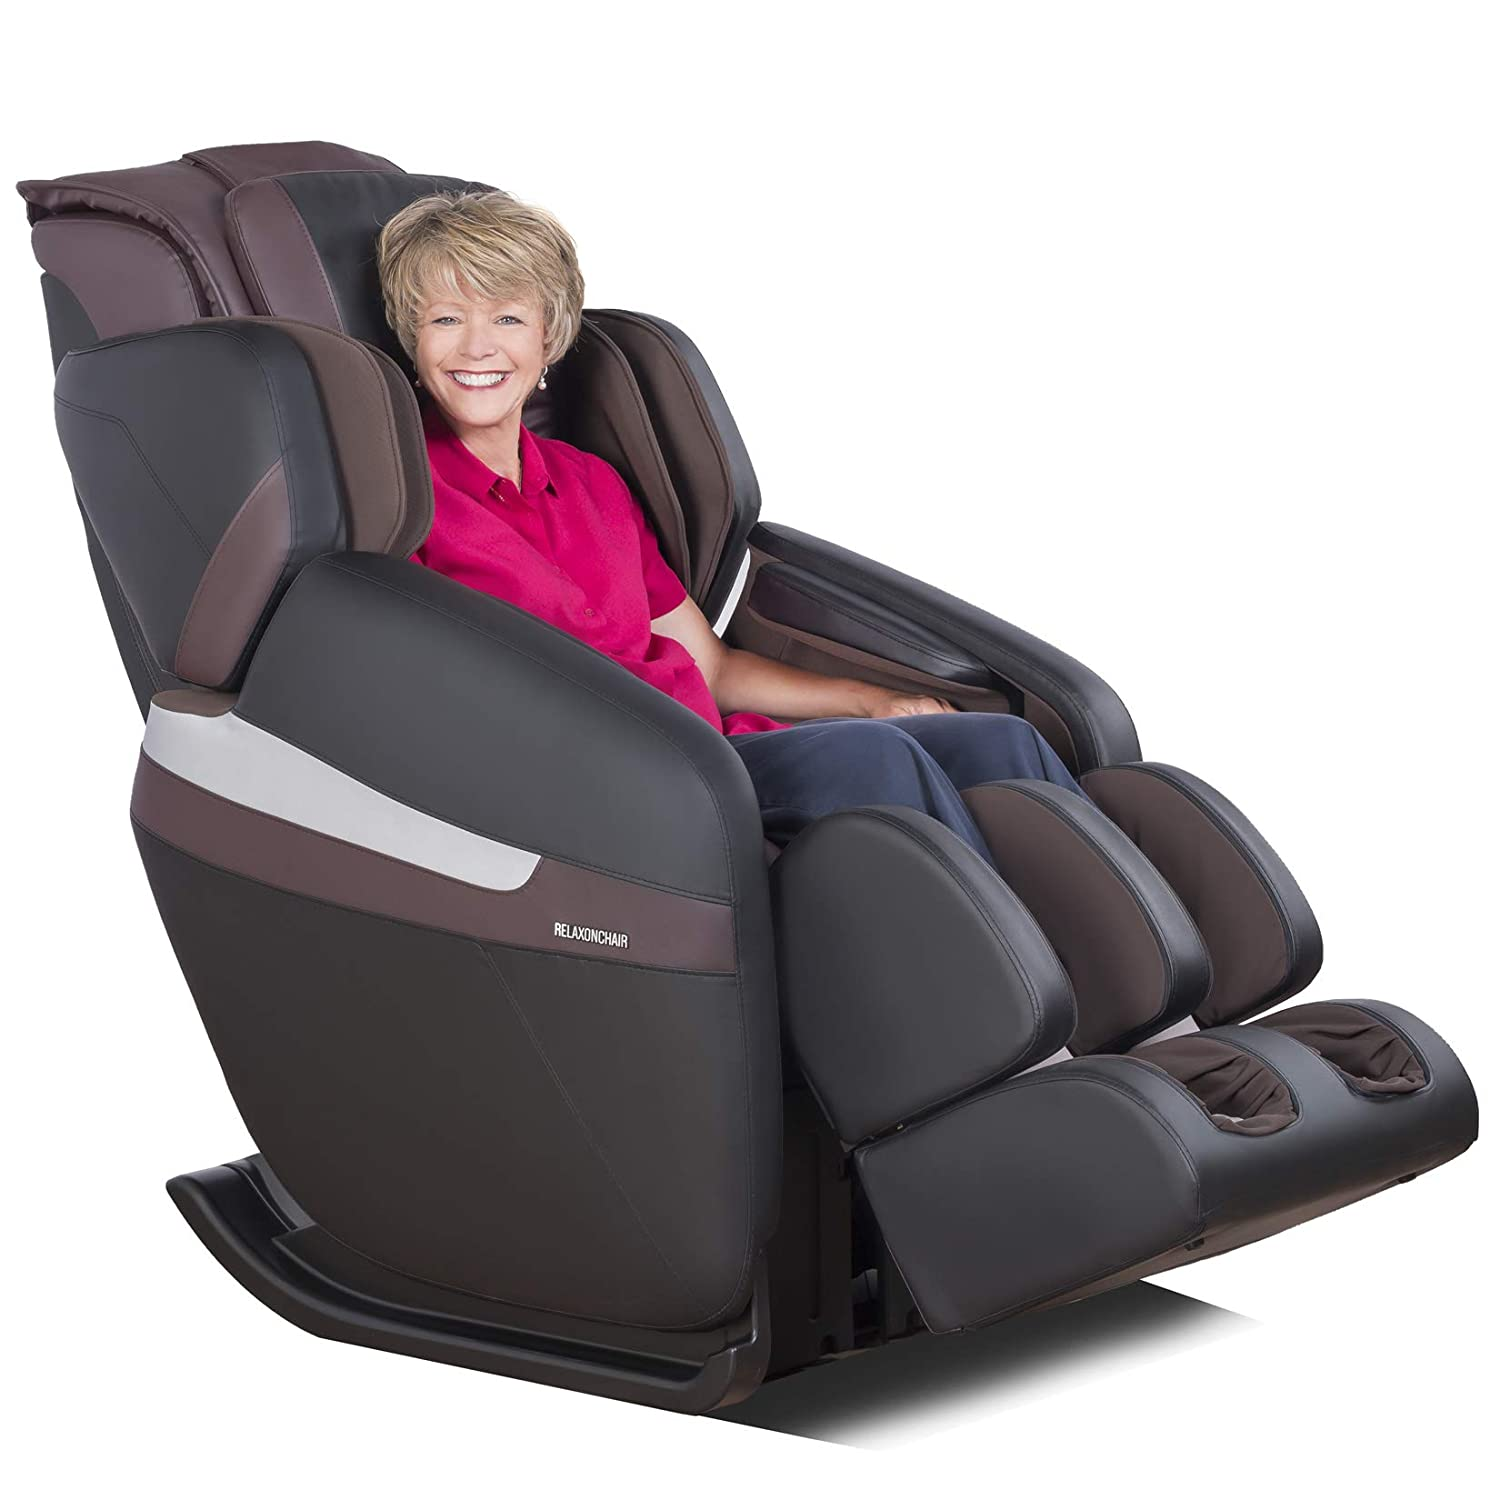 massage chairs that are worthy